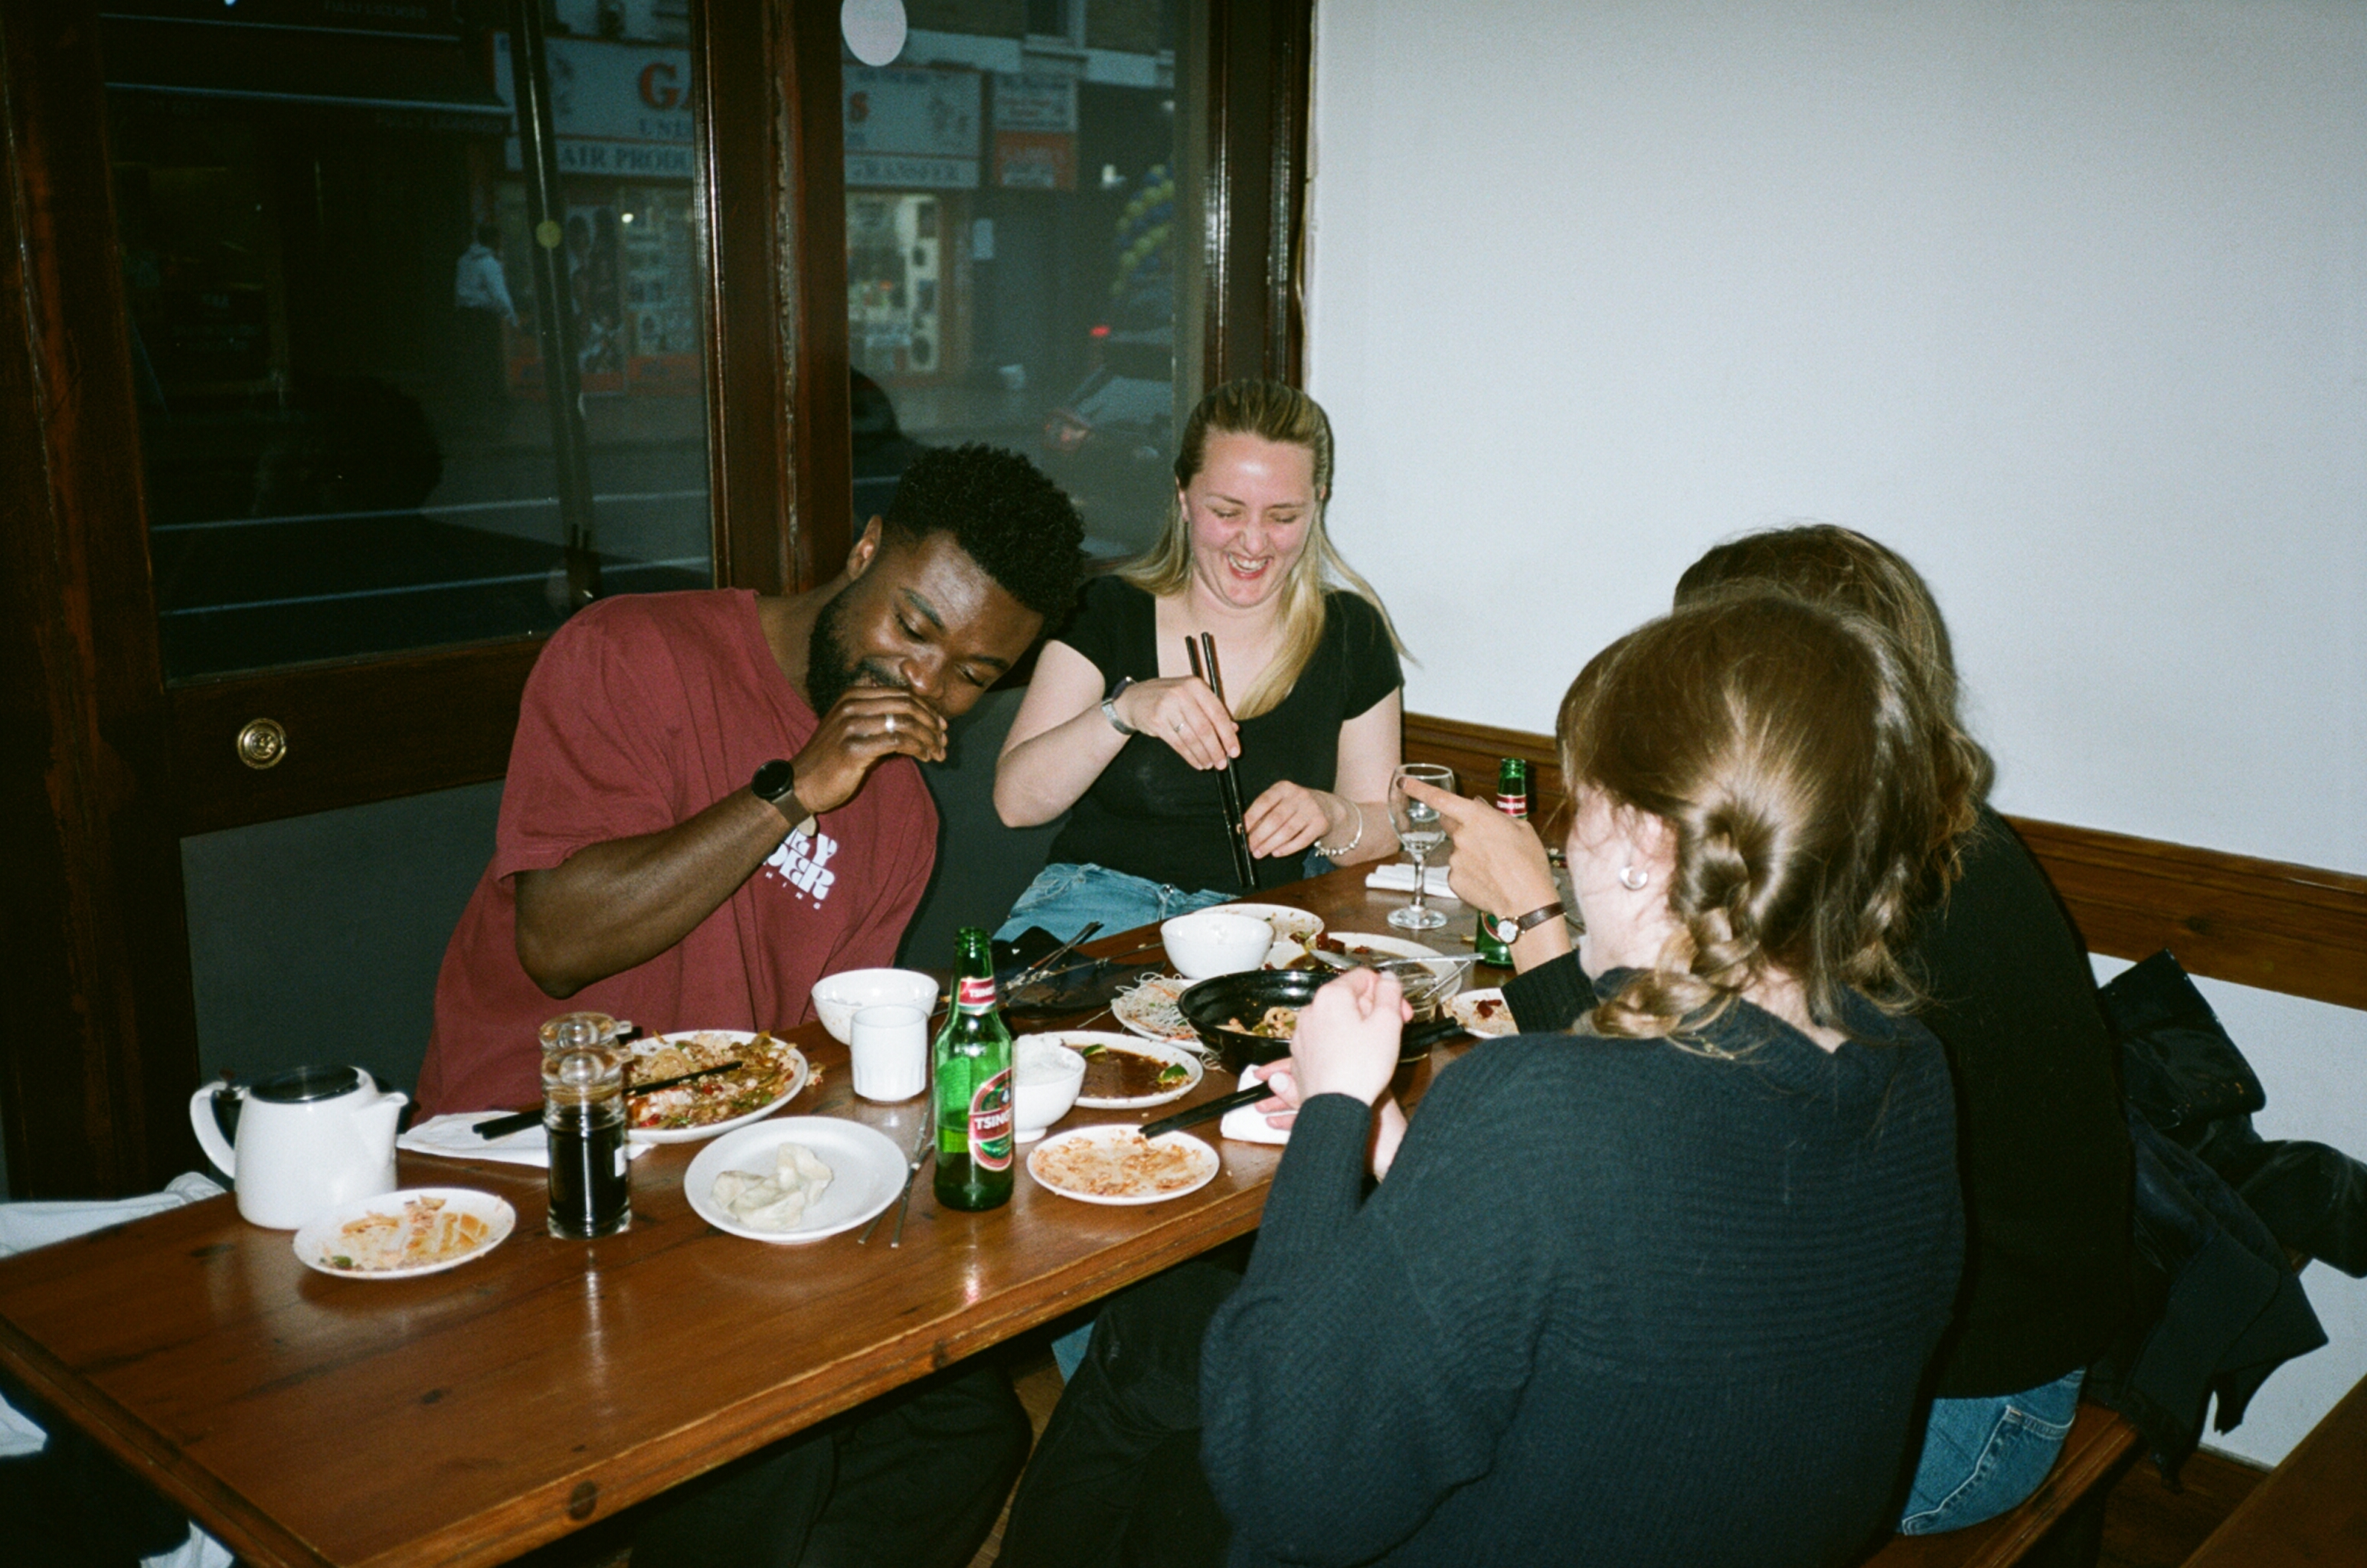 Four customers tuck into a meal at at table inside Silk Road in Camberwell